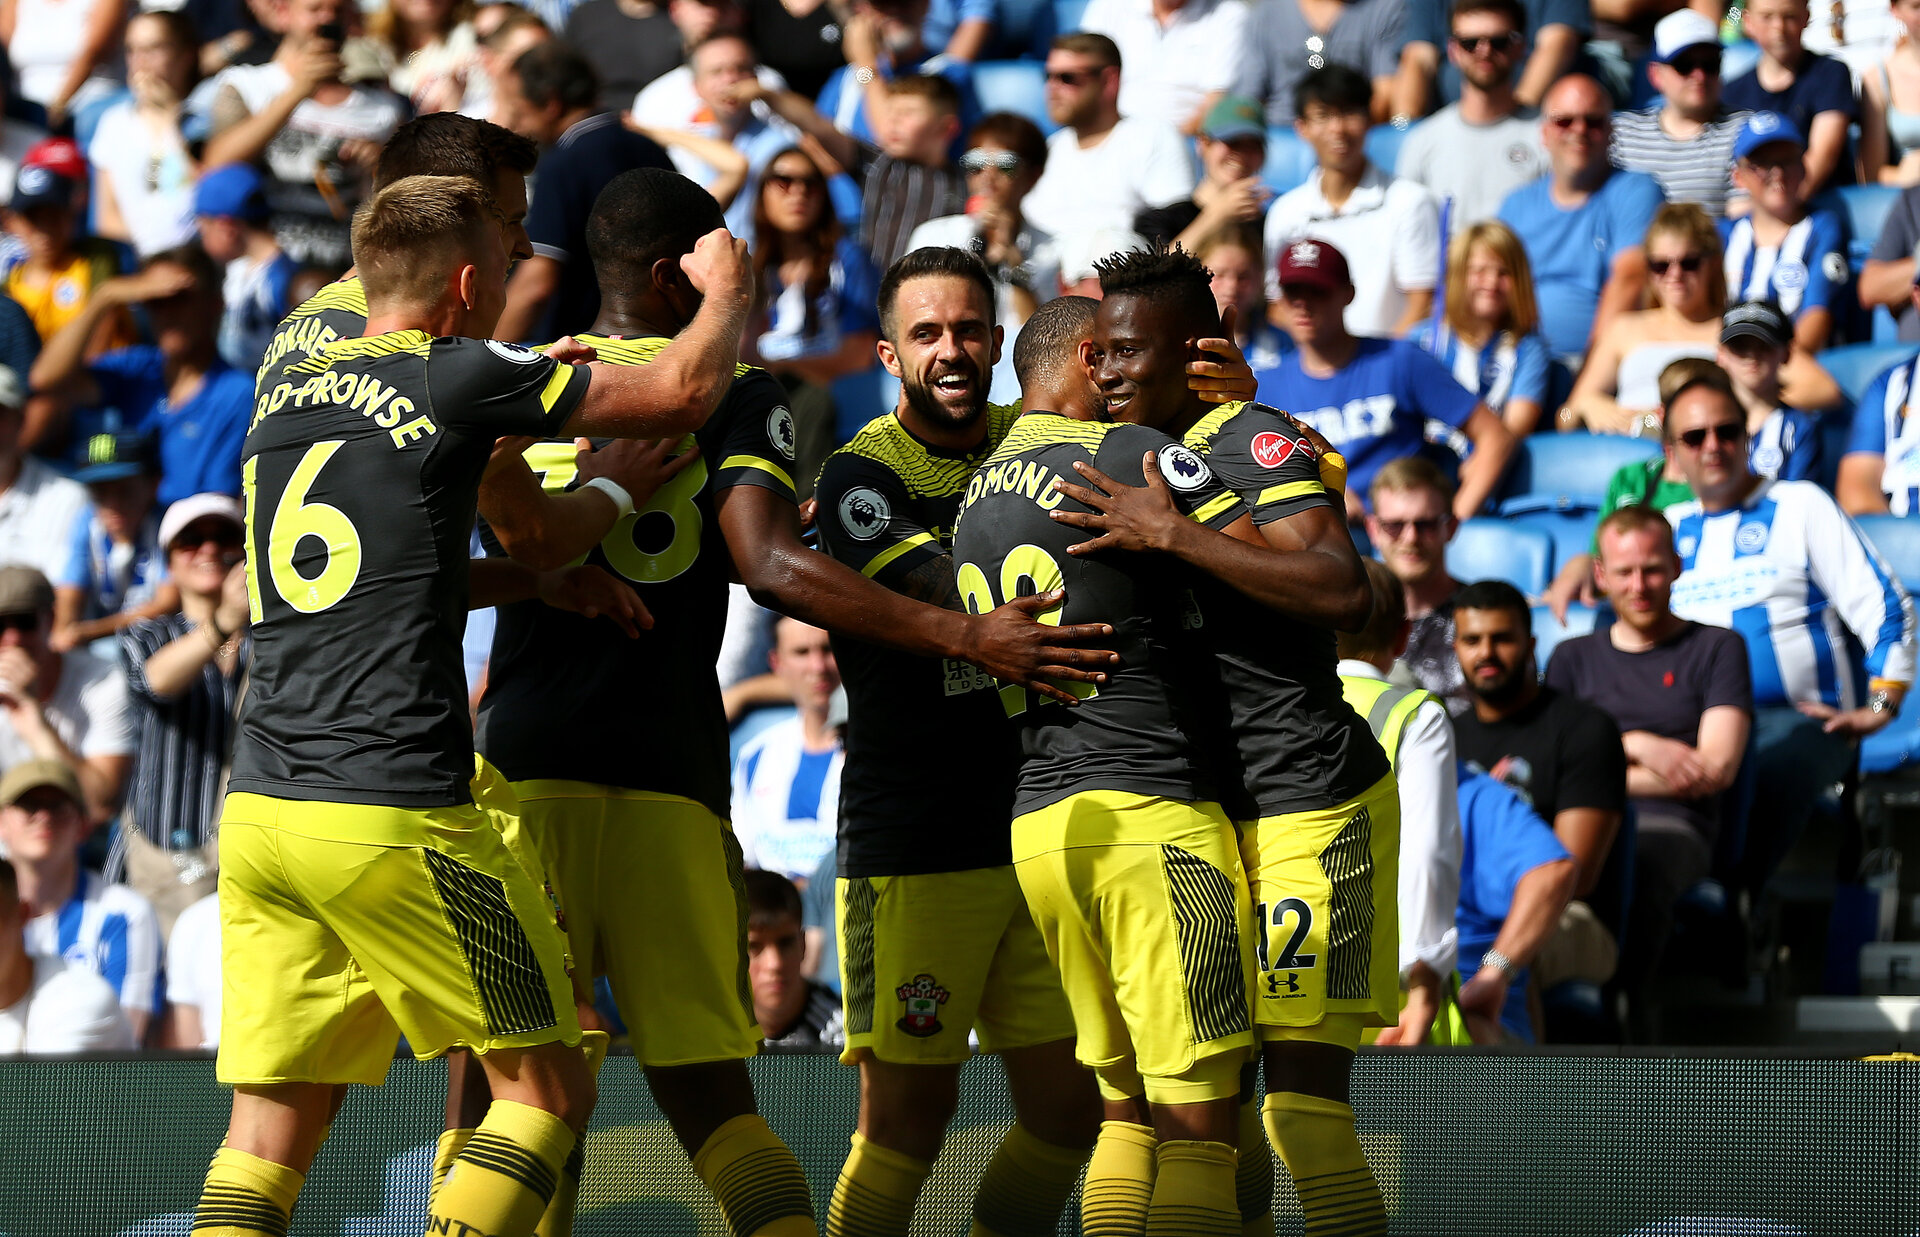 BRIGHTON, ENGLAND - AUGUST 24: Moussa Djenepo(12) of Southampton celebrates his goal during the Premier League match between Brighton & Hove Albion and Southampton FC at American Express Community Stadium on August 24, 2019 in Brighton, United Kingdom. (Photo by Matt Watson/Southampton FC via Getty Images)